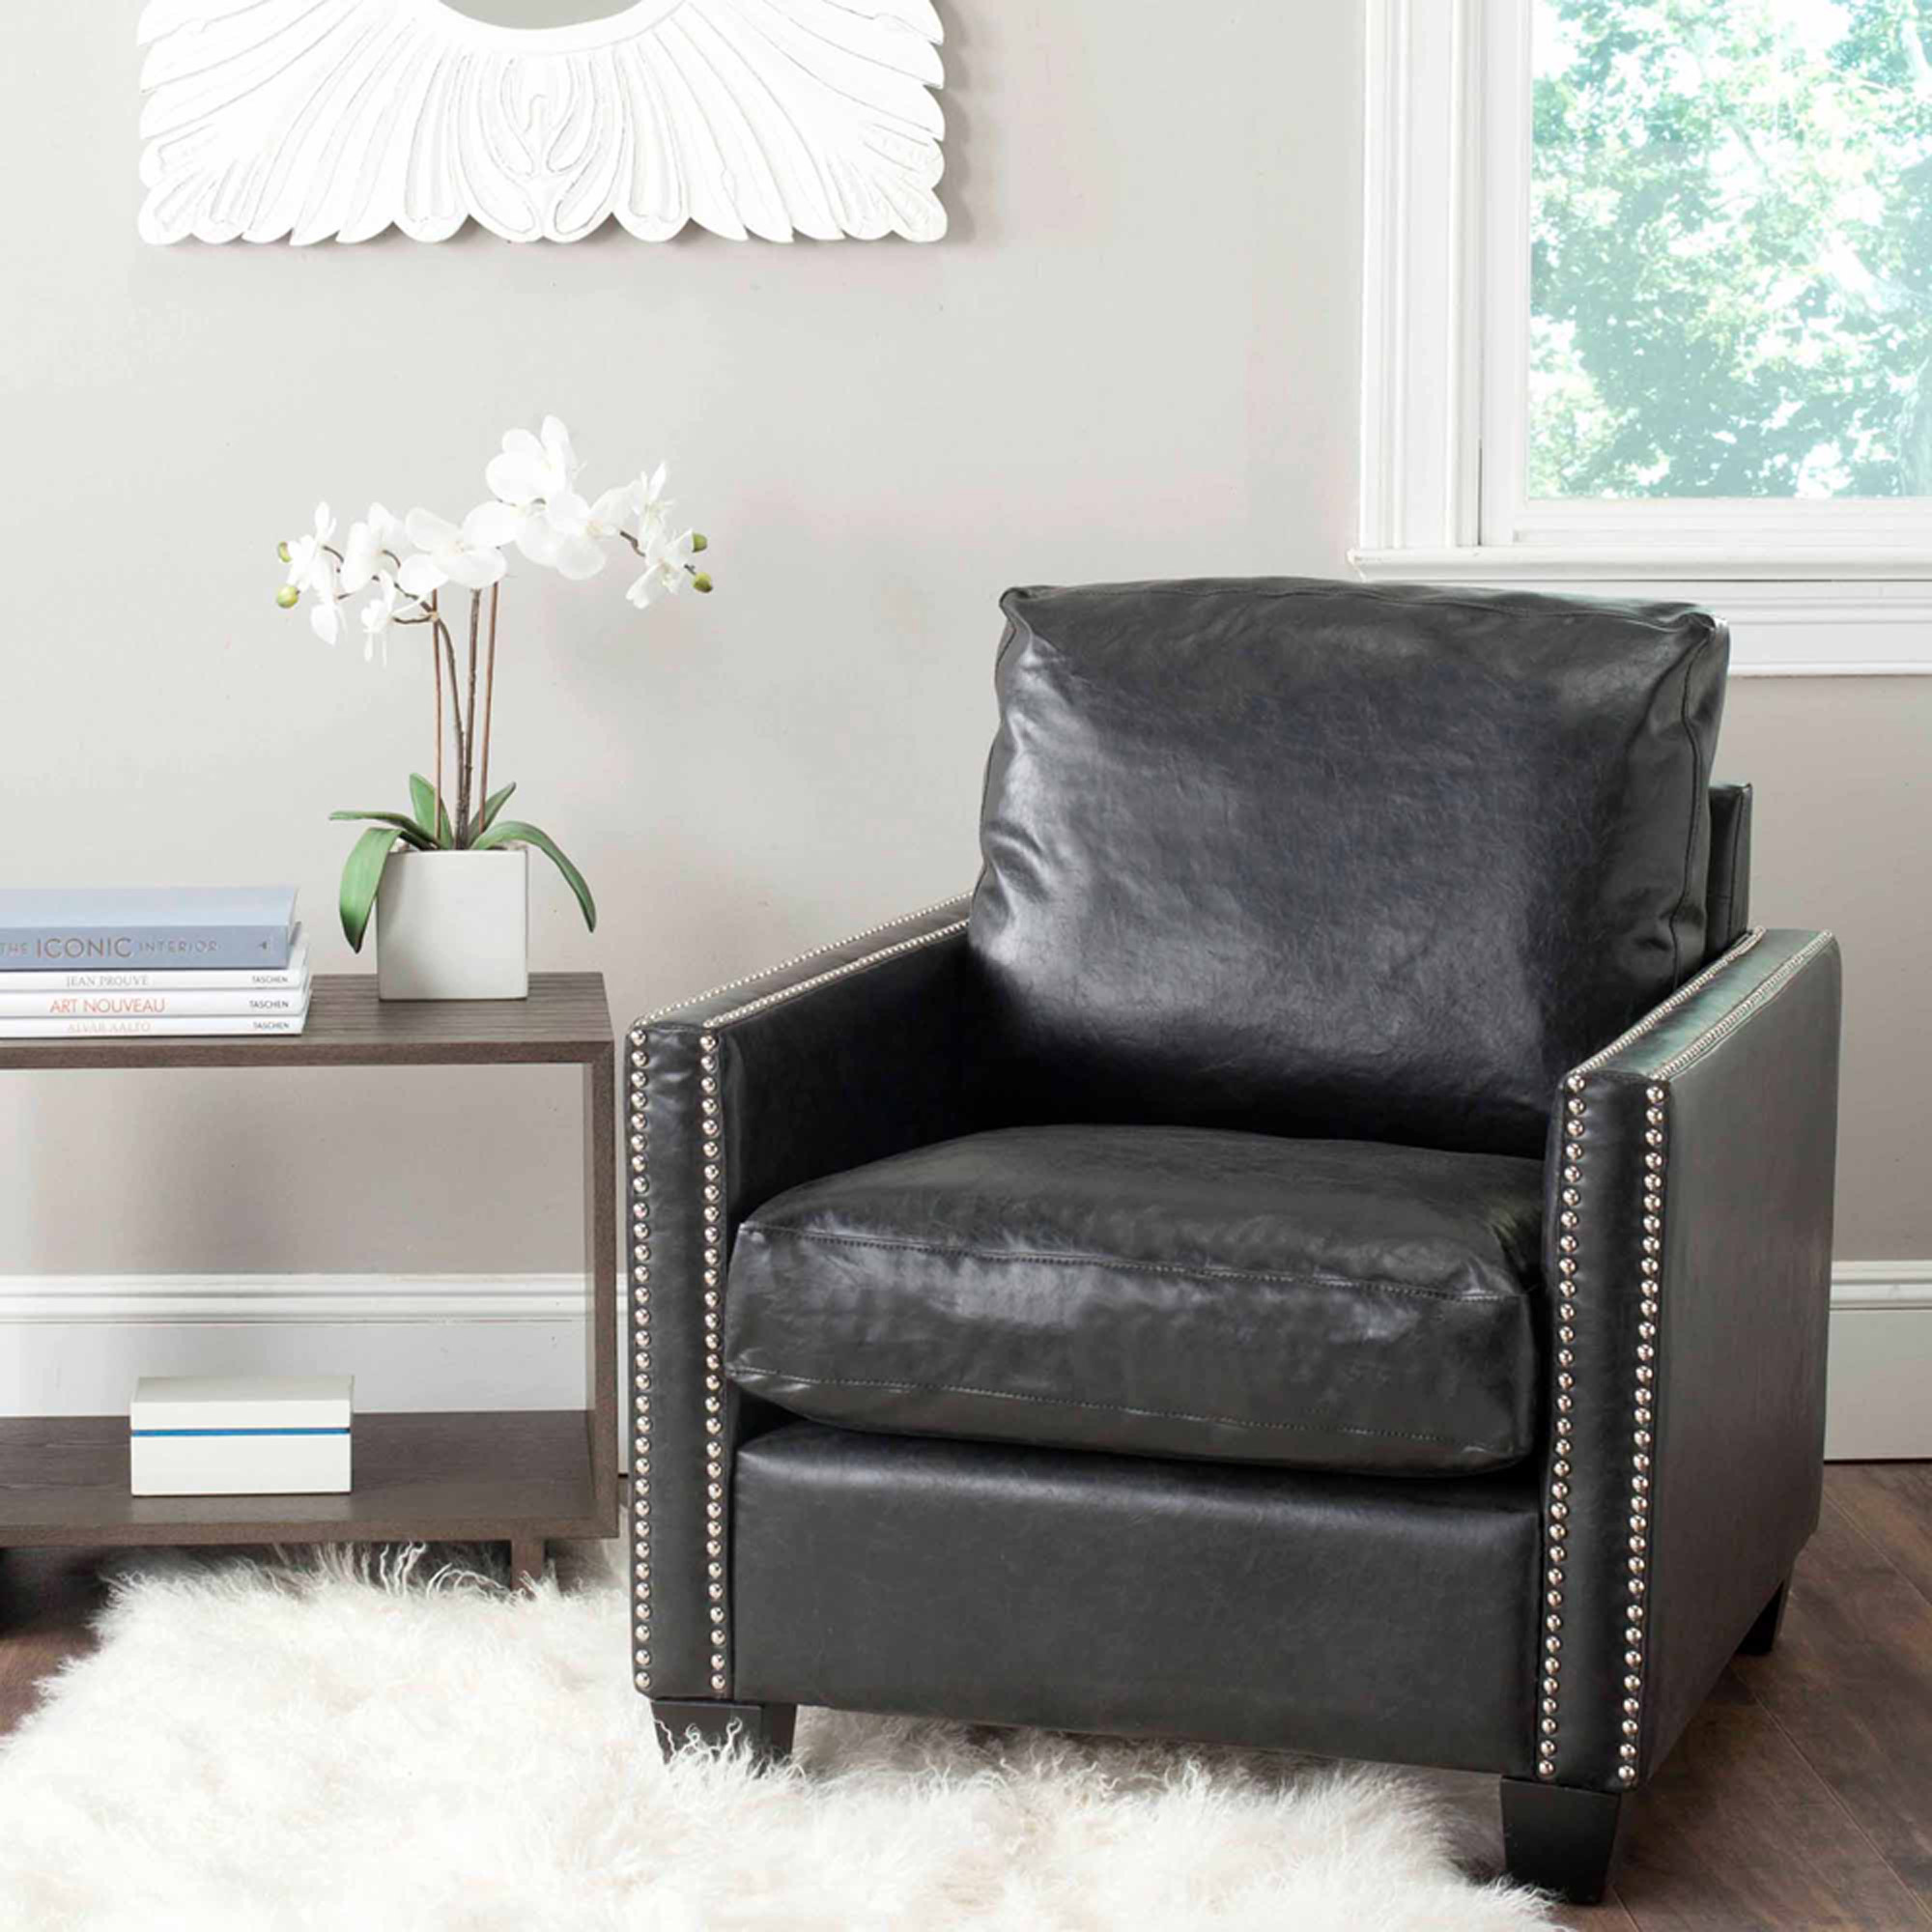 Safavieh Horace Bicast Leather Club Chair, Antique Black with Silver Nail Heads